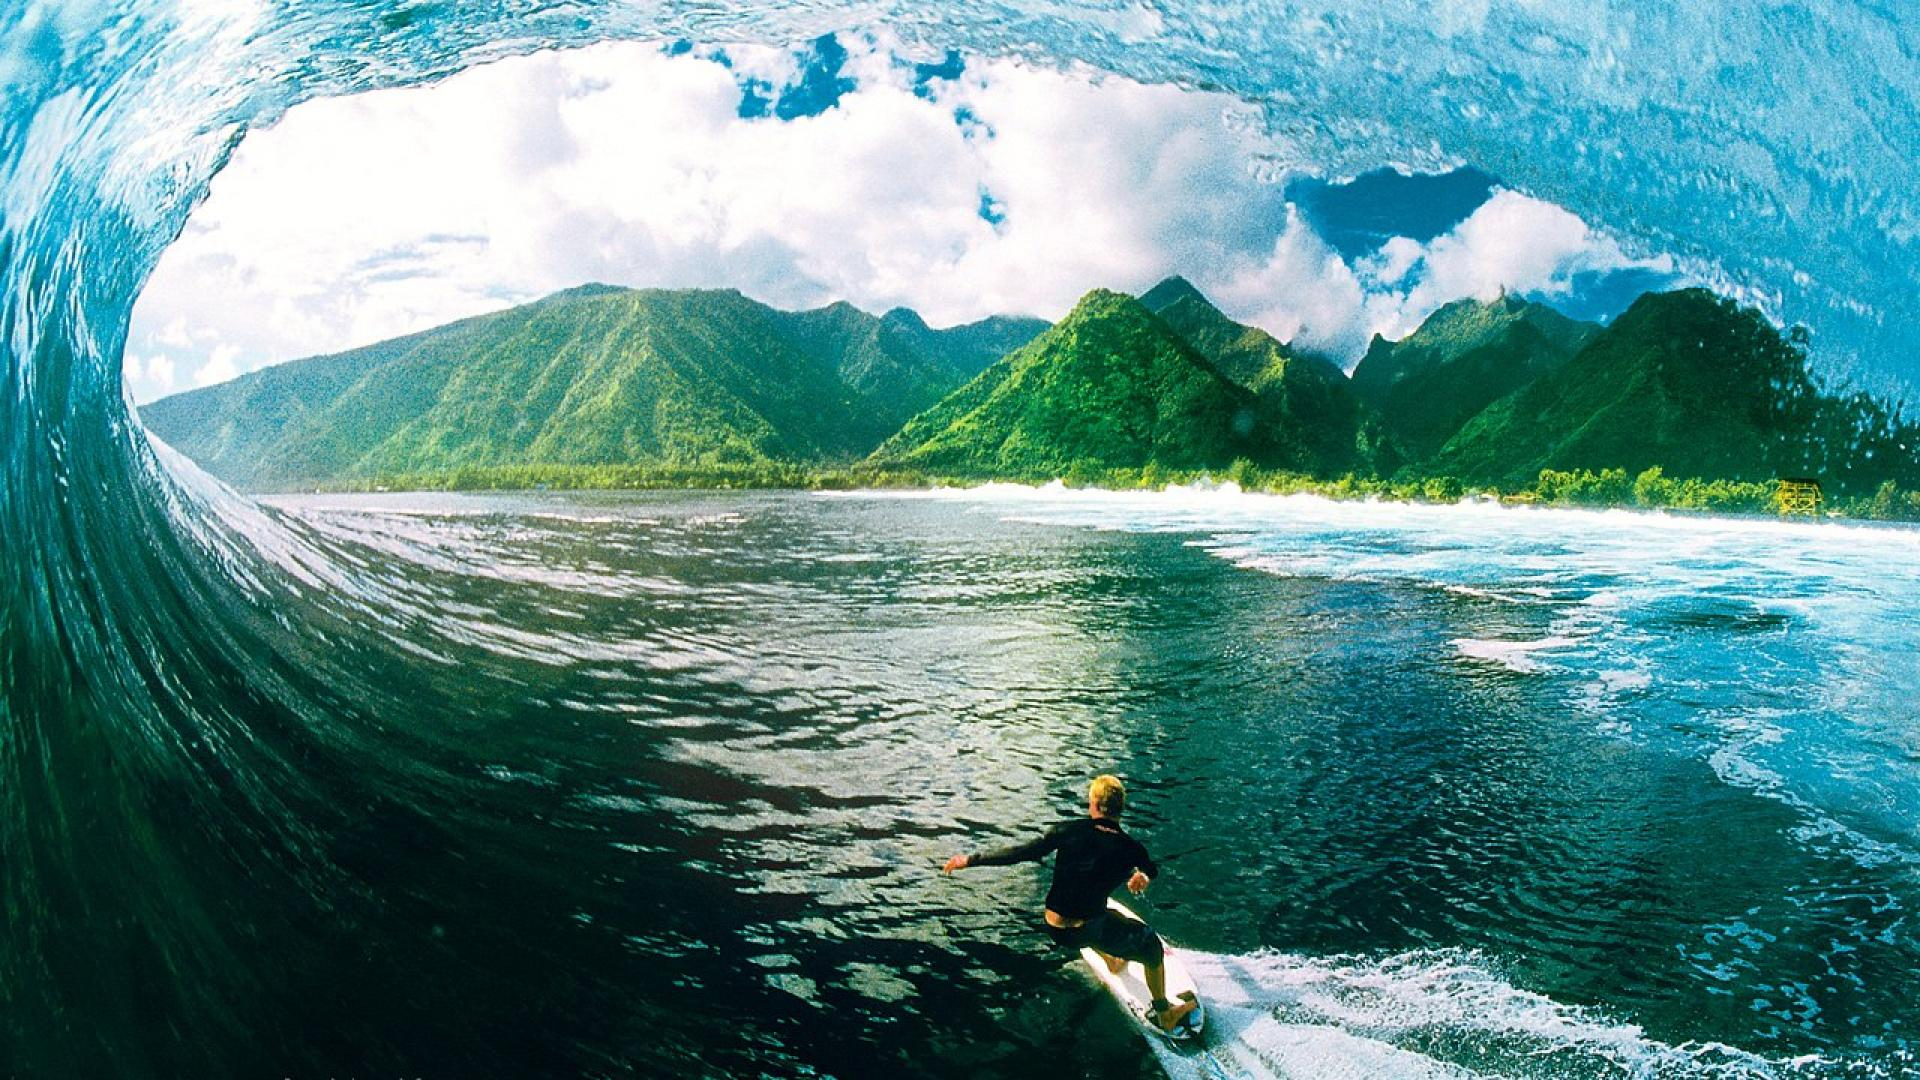 Awesome Surfing Wallpaper